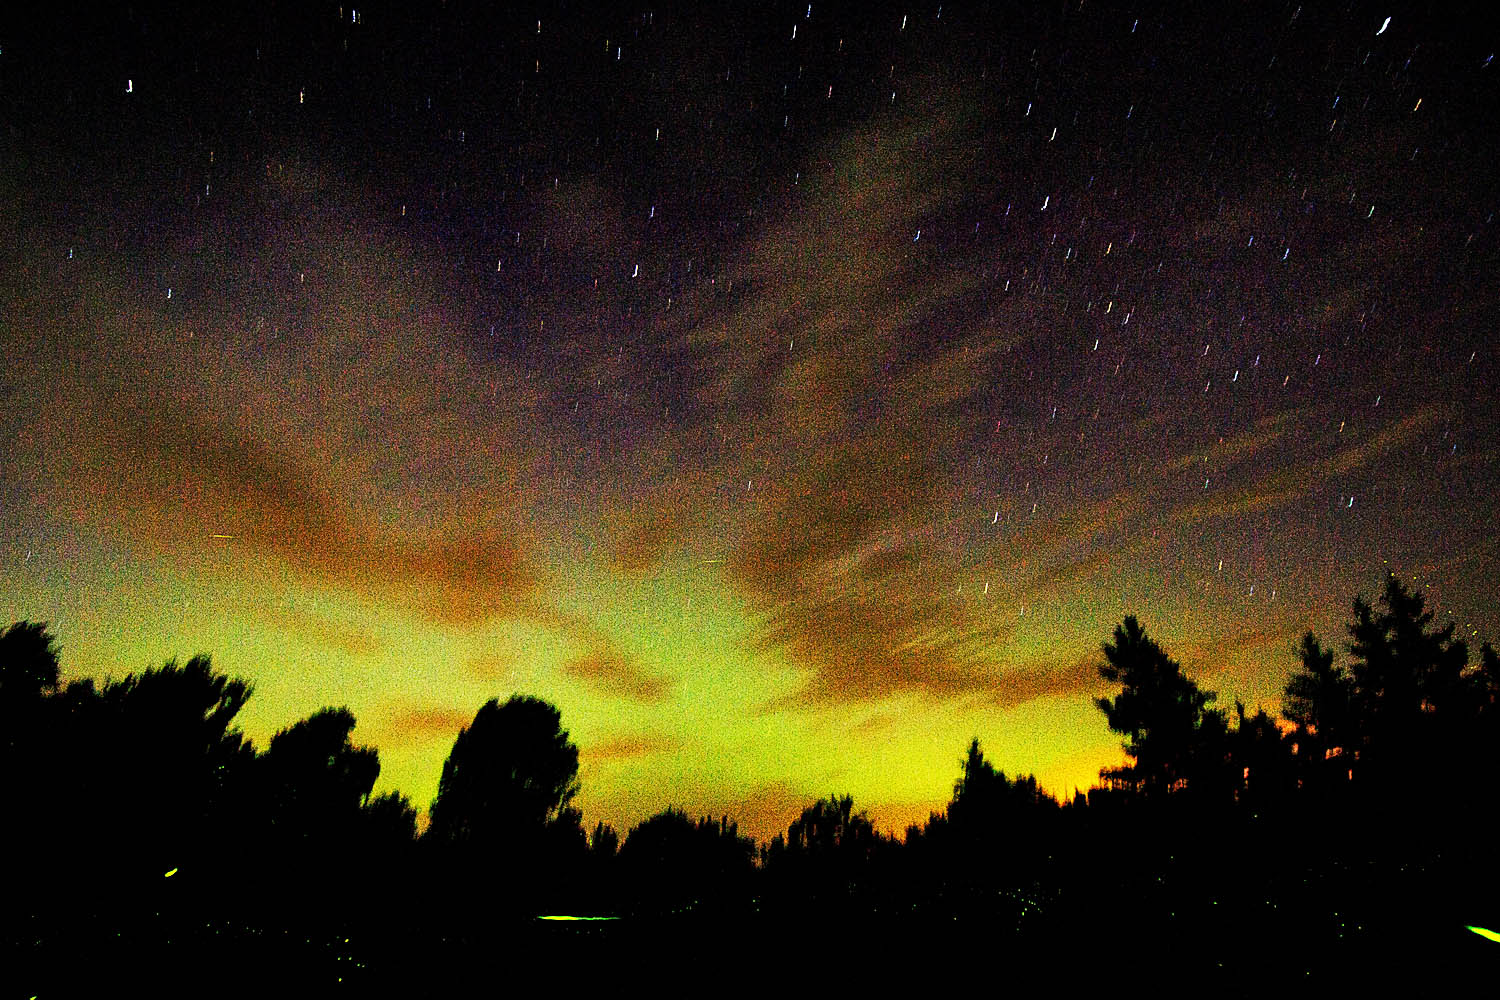 The Northern Lights? Unclear. But it is the view from my mailbox.